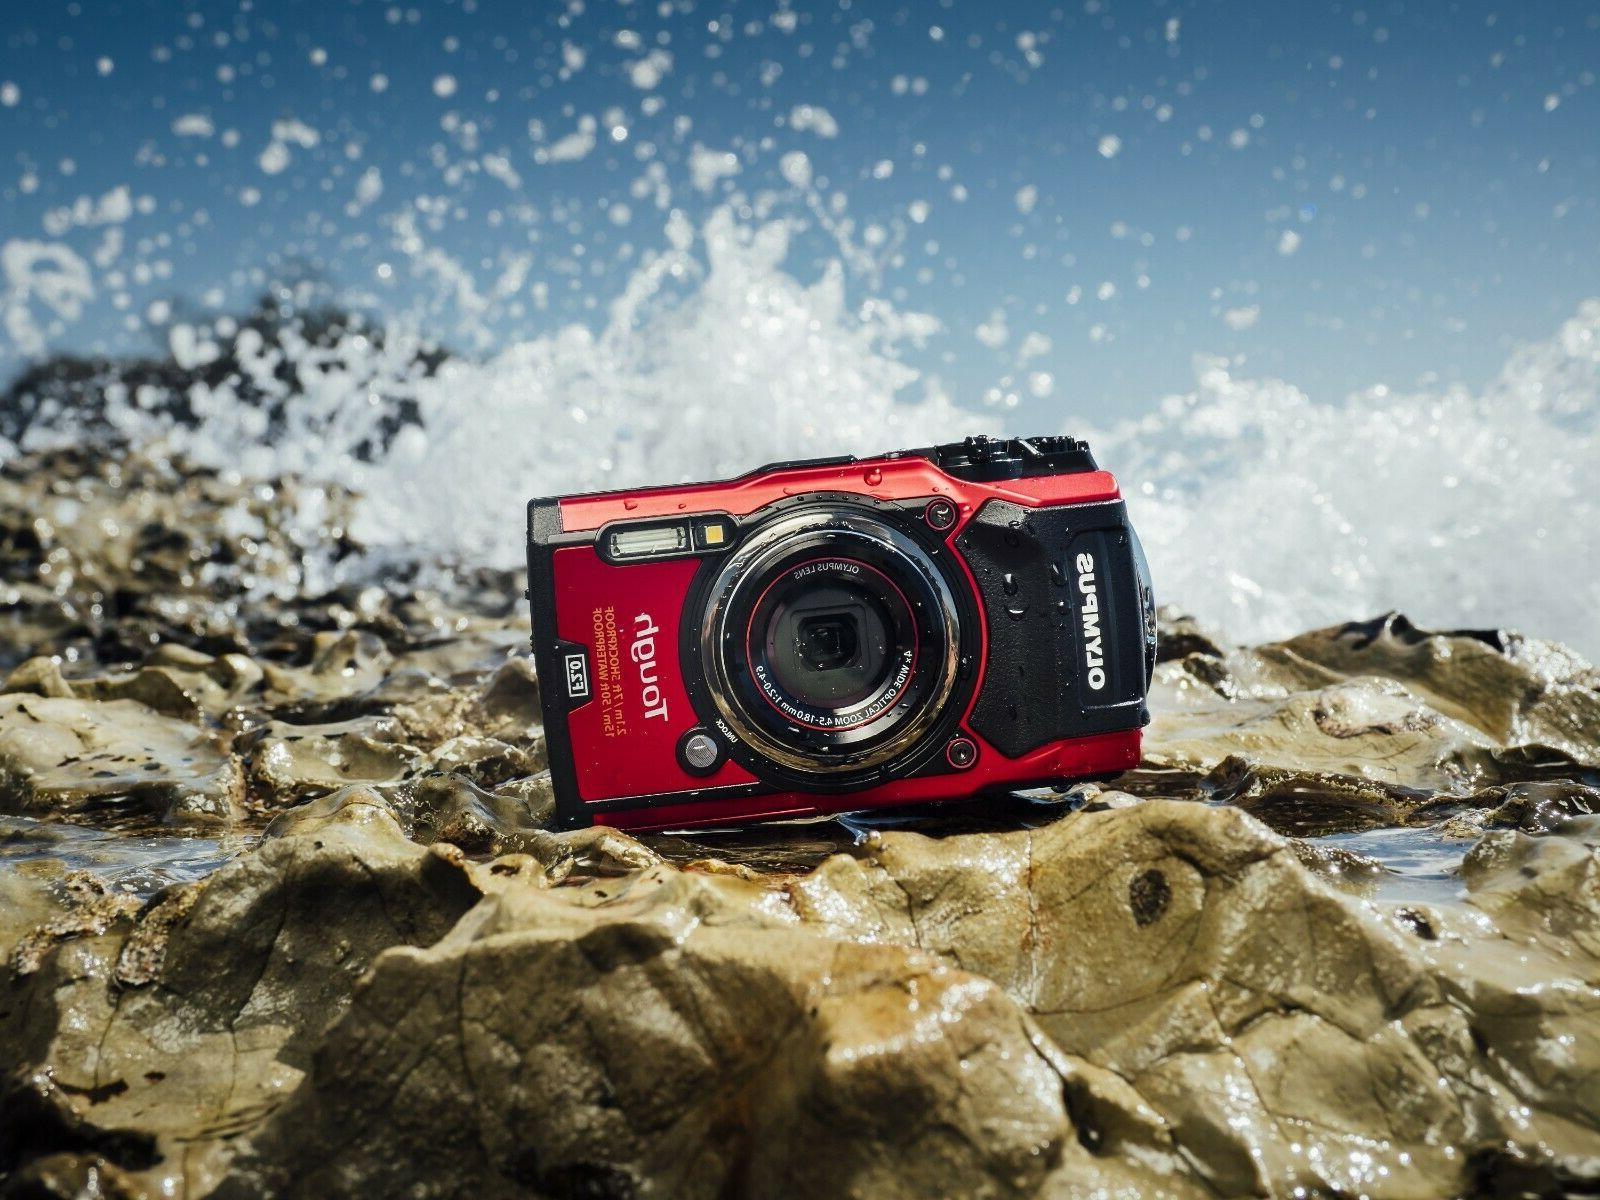 Olympus TG-5 Compact Camera - Red